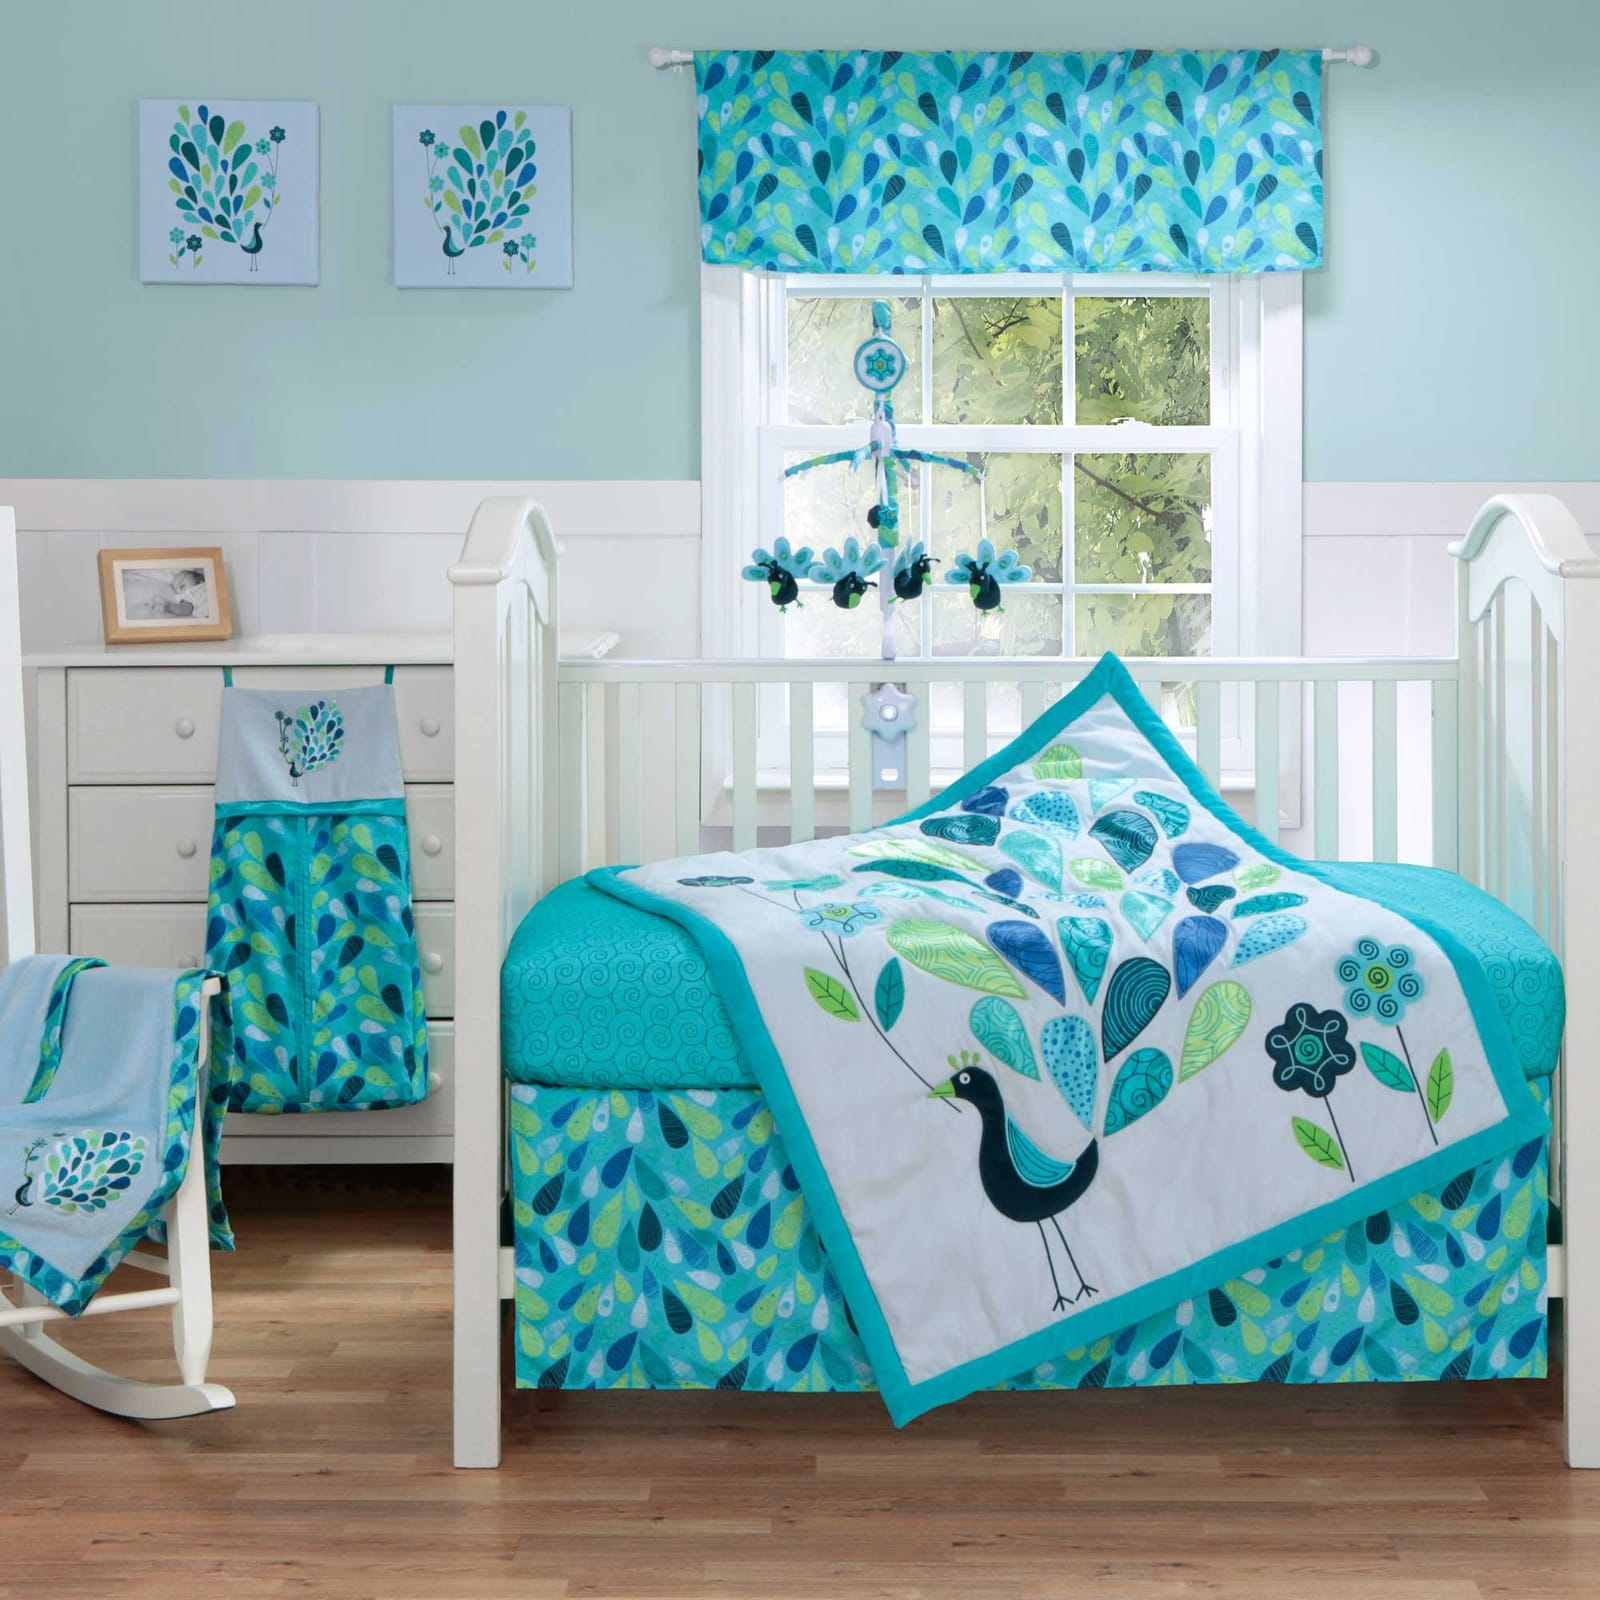 Peacock Feather Bedding Set | Peacock Bedding | Peacock Bedding Sets